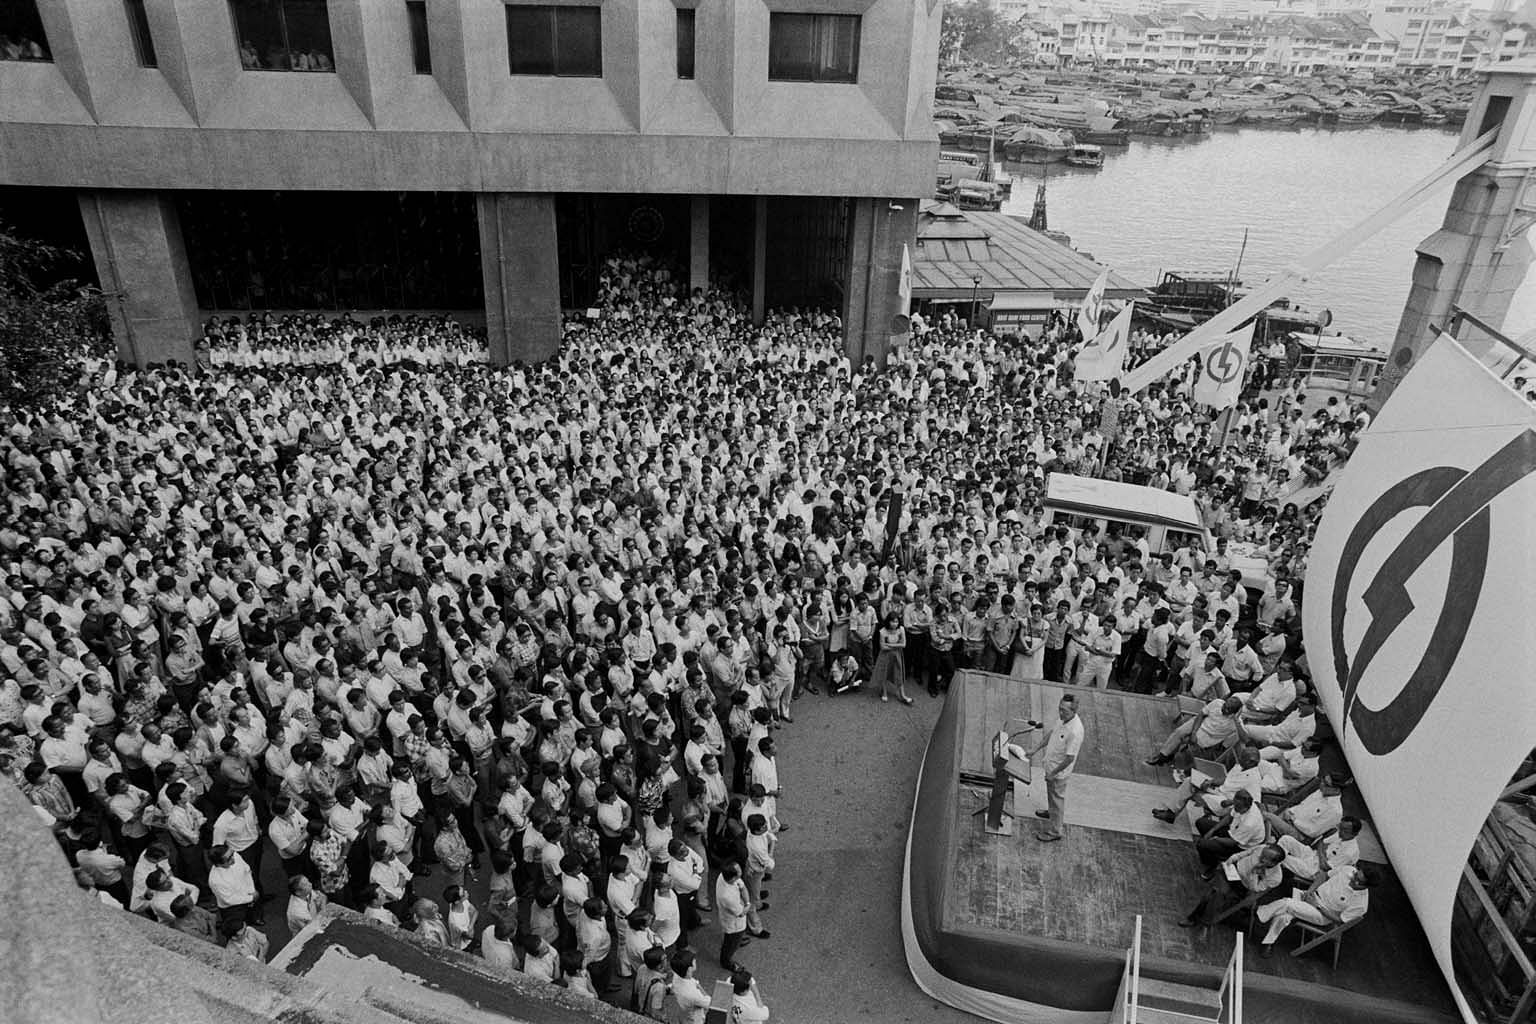 048a2430916 Prime Minister Lee Kuan Yew speaking to a packed lunchtime rally crowd at  Fullerton Square in 1976. PHOTO: ST FILE